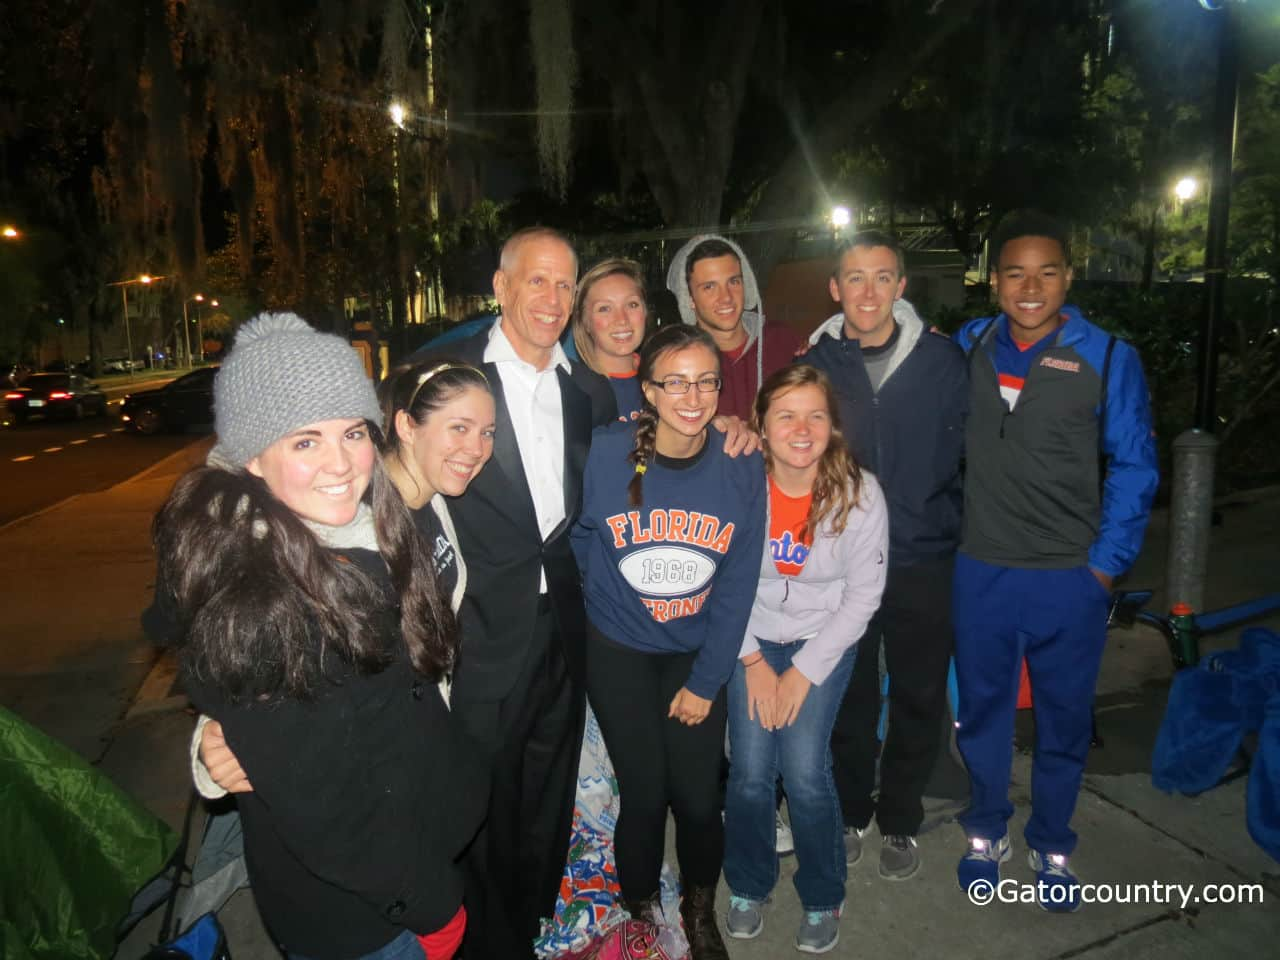 Florida athletic director Jeremy Foley poses for a picture with students camping out prior to the Florida-Kentucky basketball game.